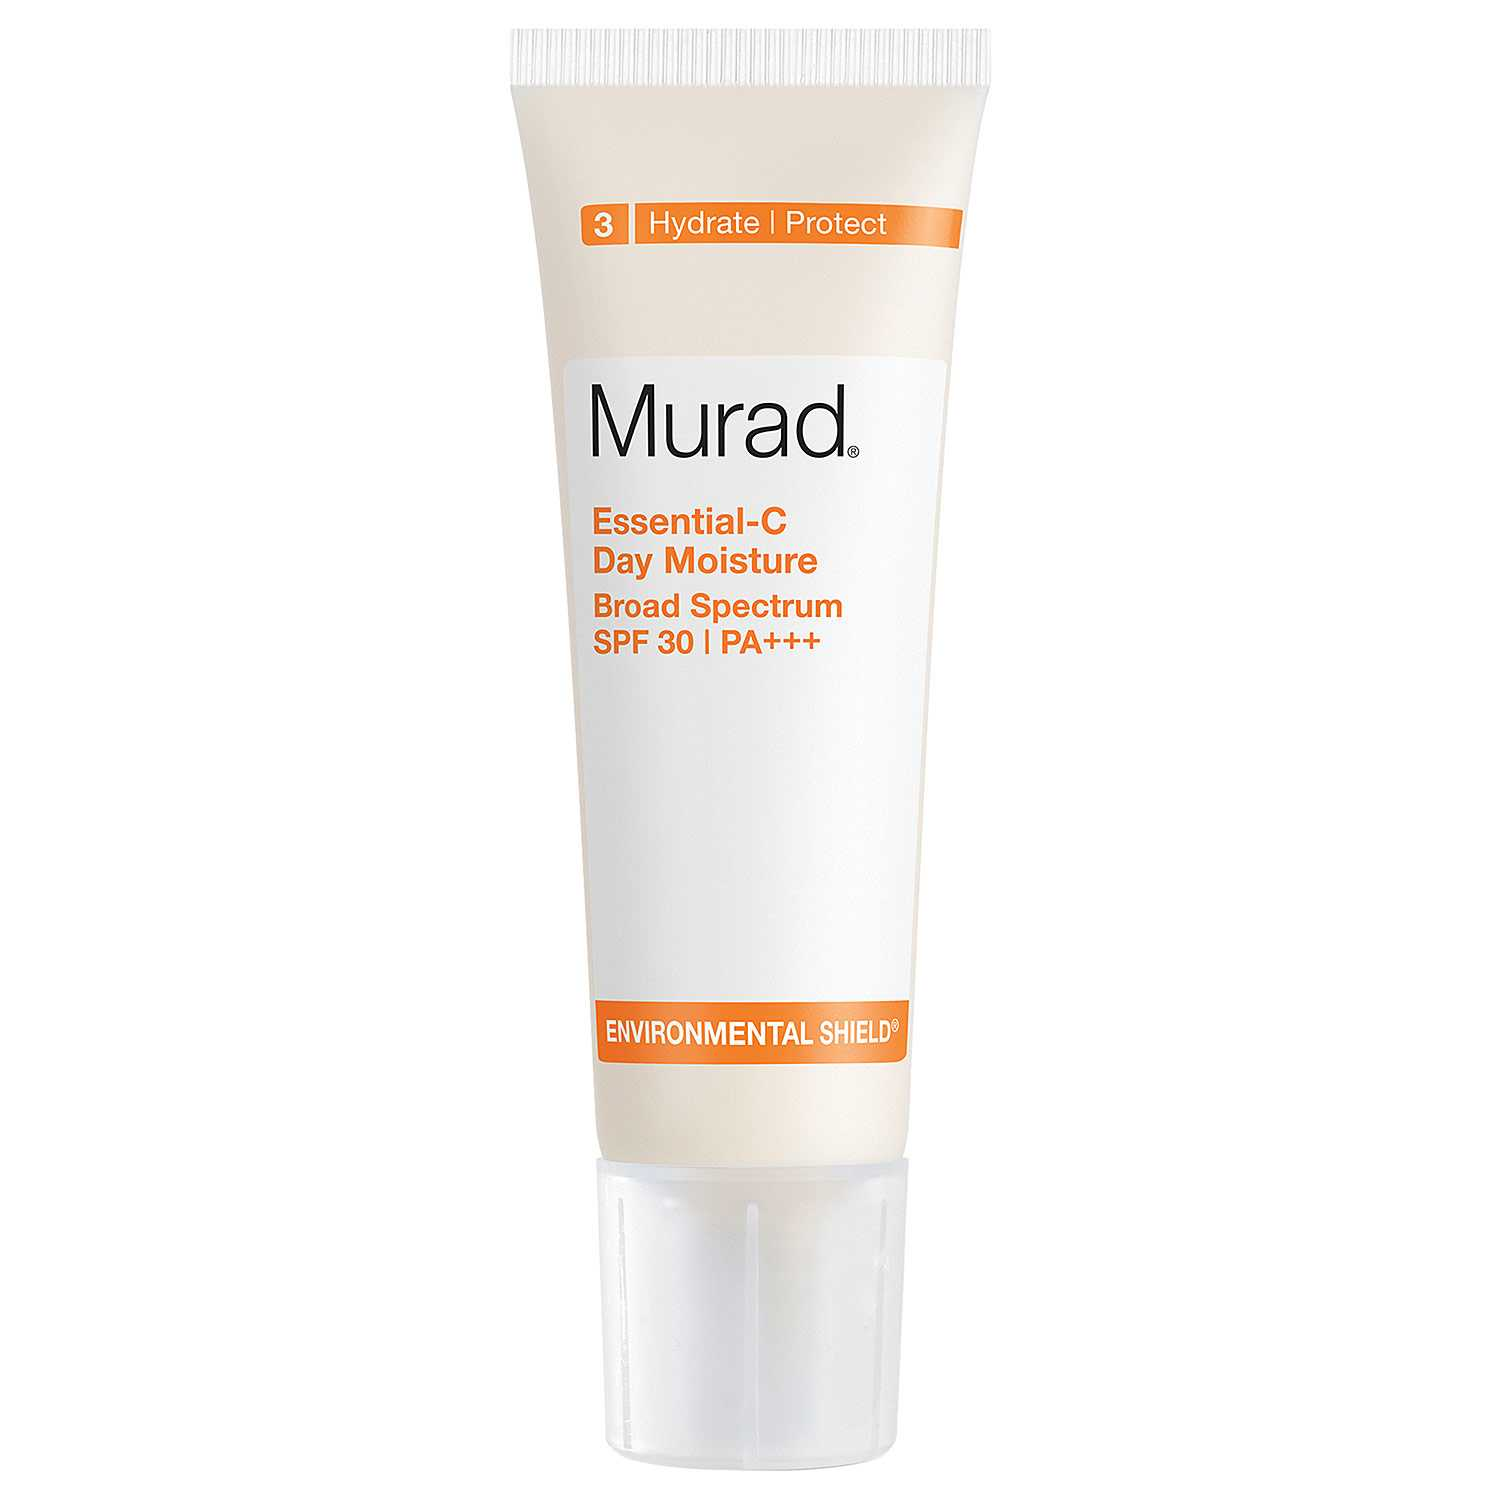 Product Review: #CelebrateYourFace With Facials By Murad Skincare | Murad